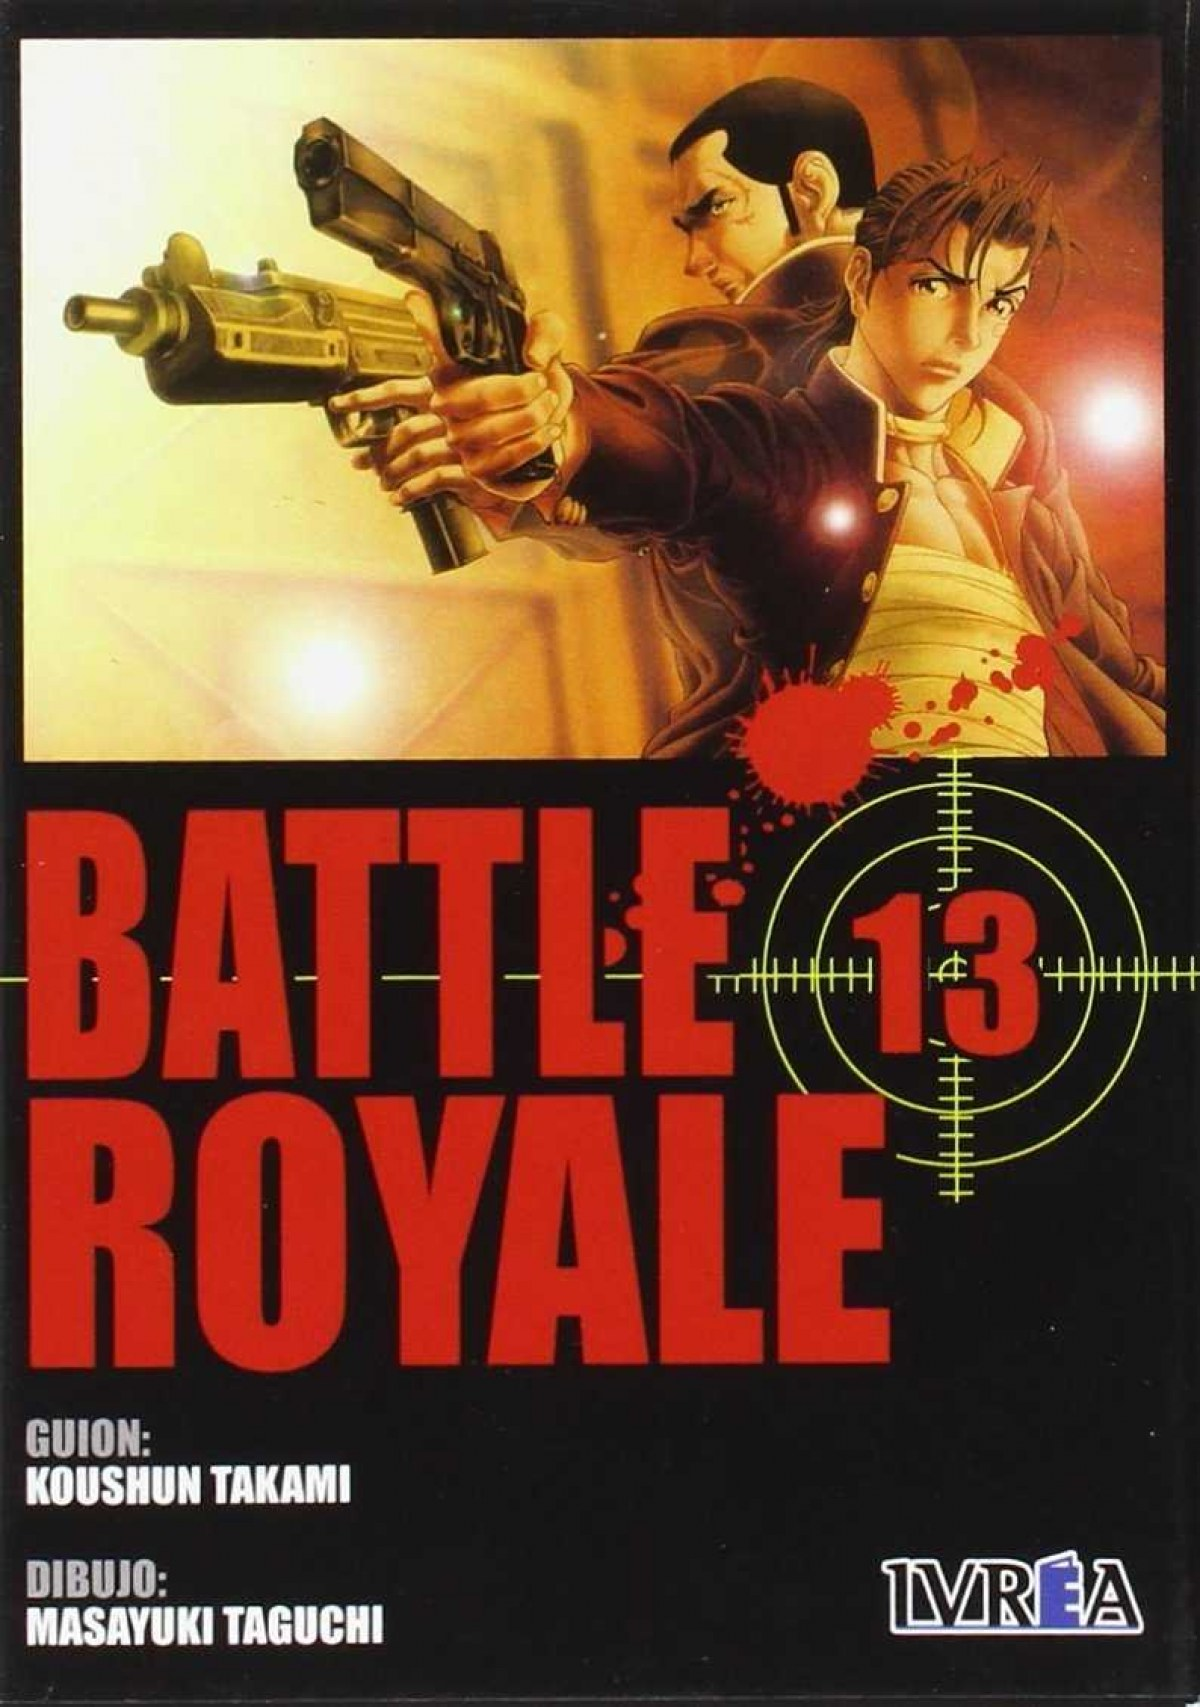 Battle Royale,13 - Takami, Koushun